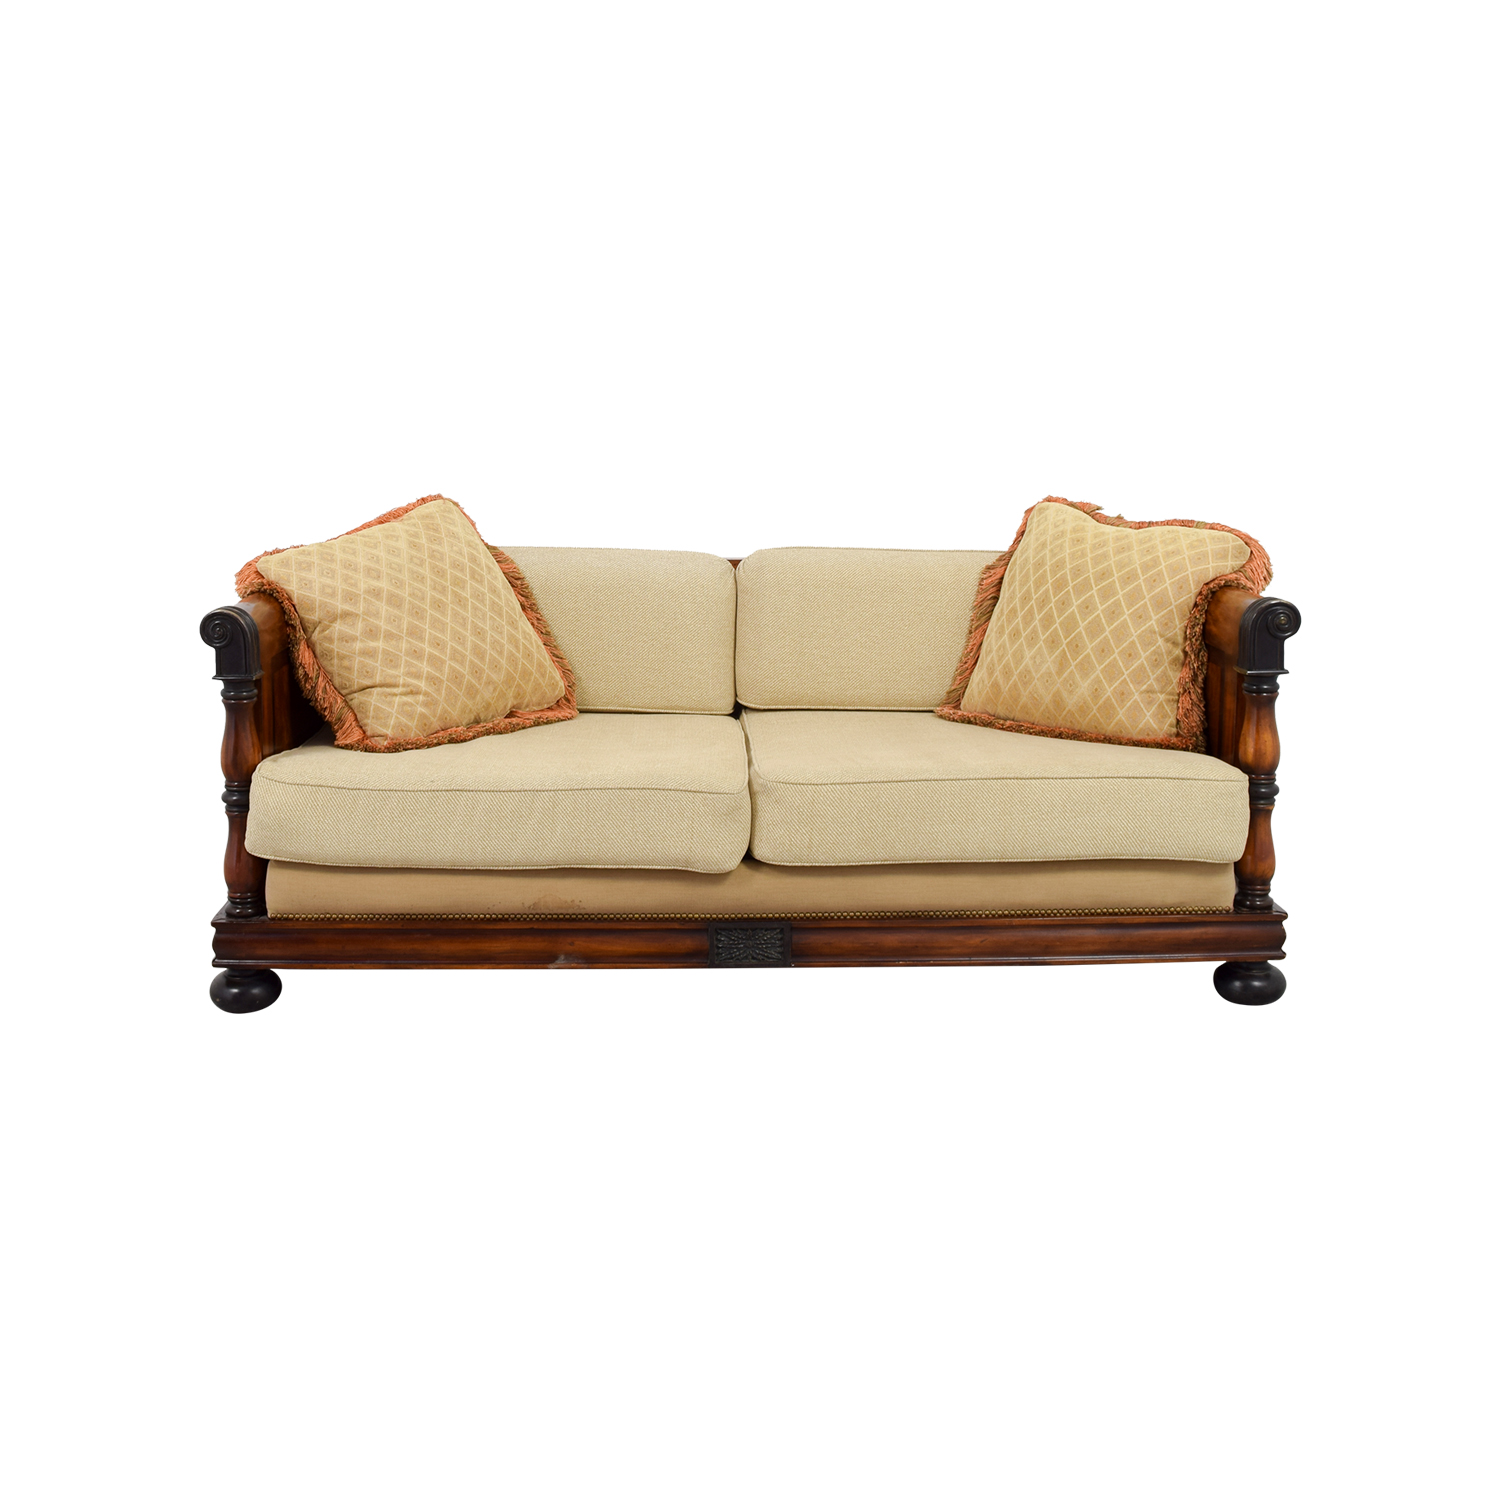 Wooden Framed Sofa Joystyle Interior Rakuten Global Market An Amount Of Money Thesofa